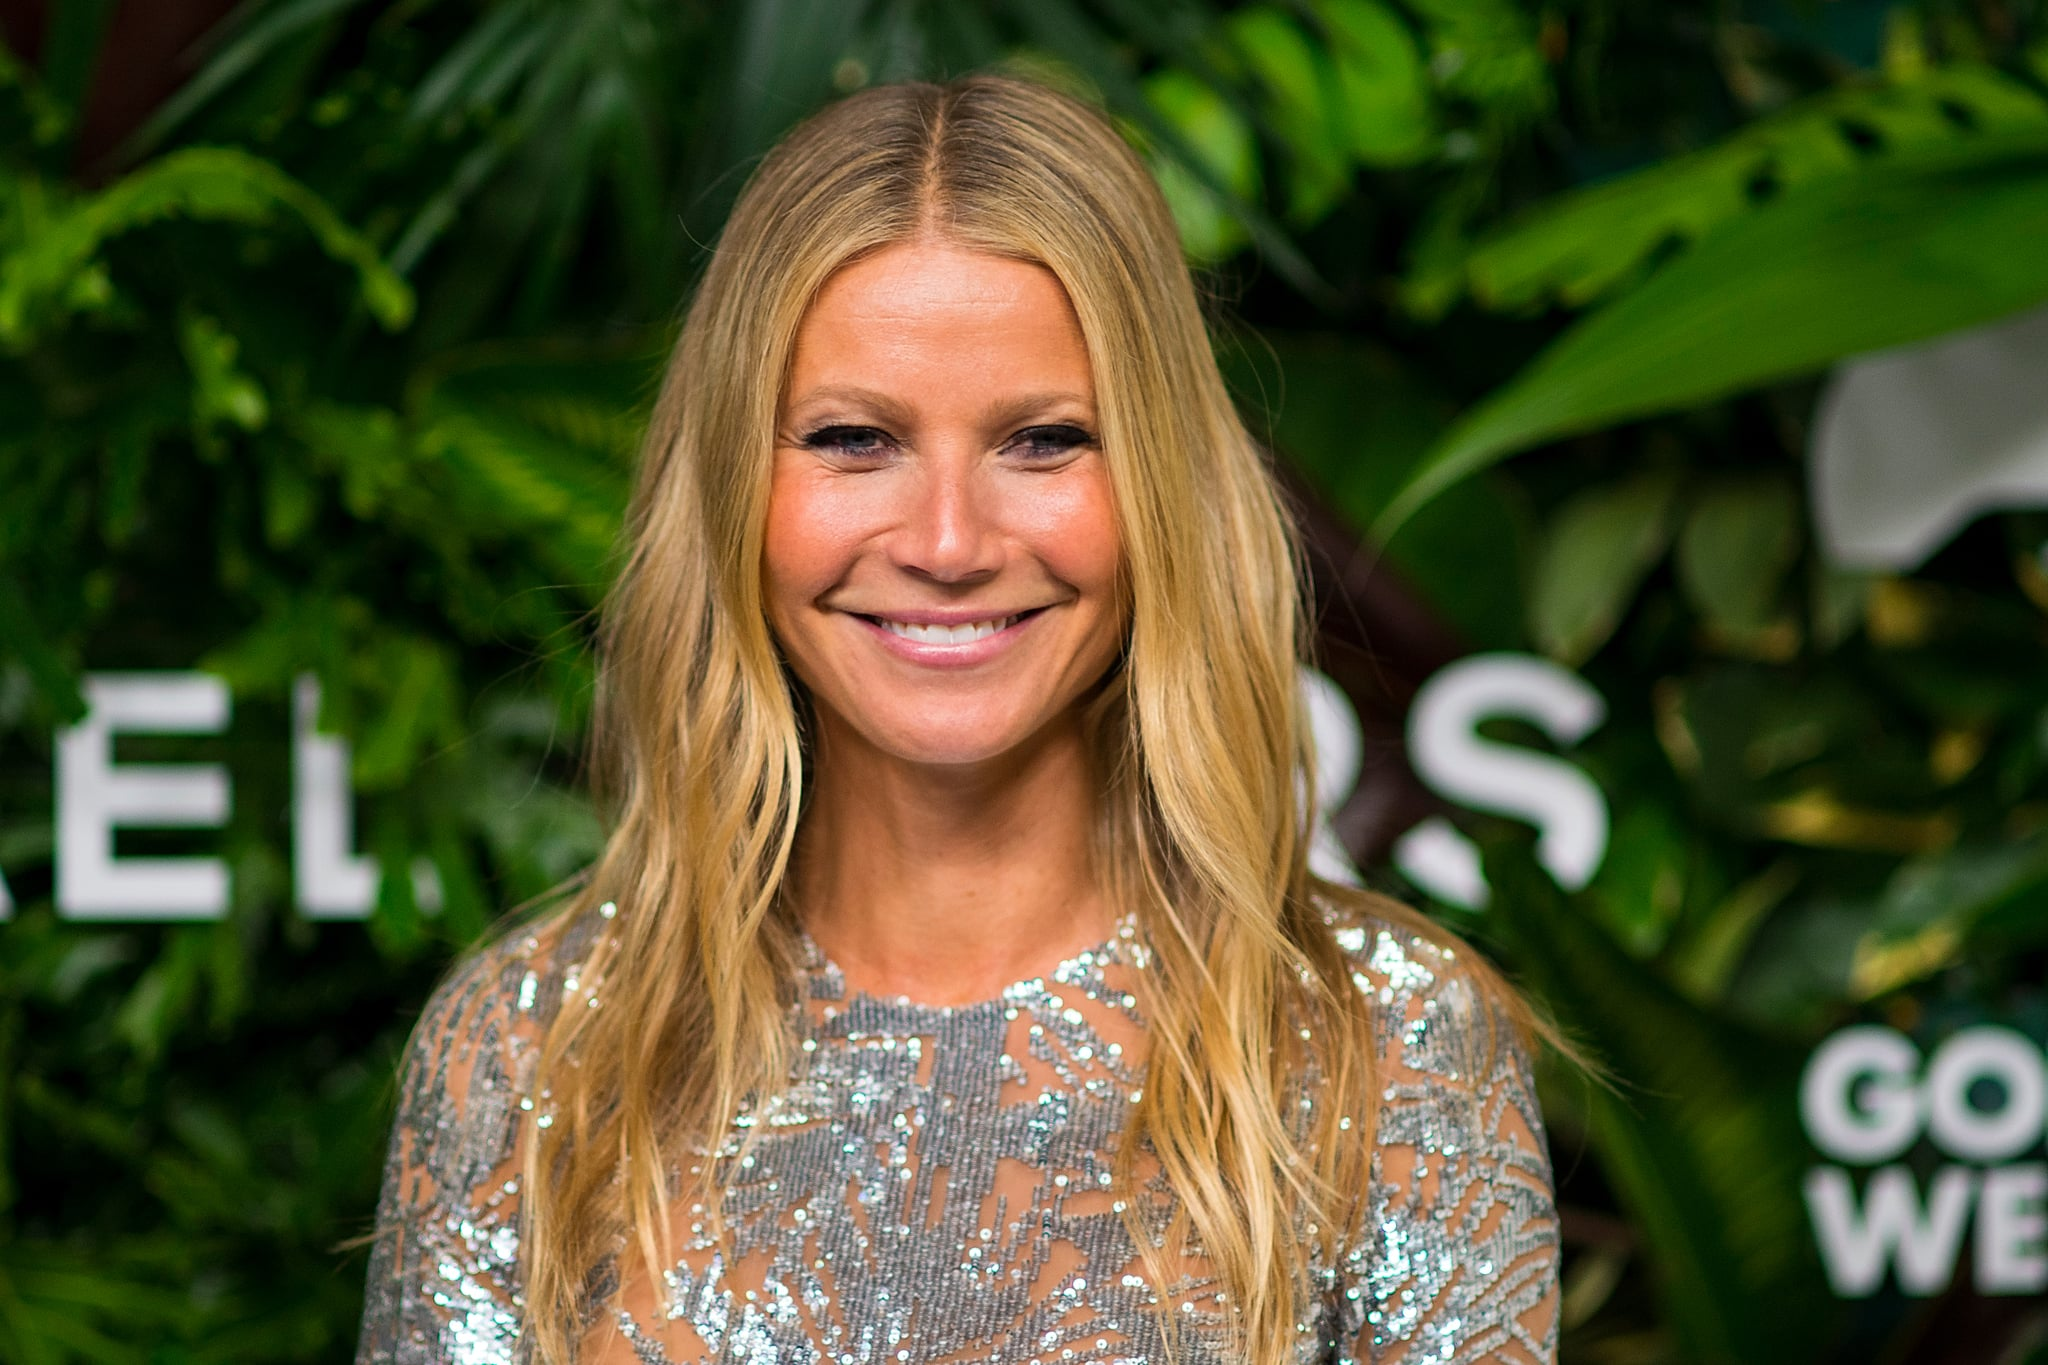 NEW YORK, NY - OCTOBER 16:  Gwyneth Paltrow attends the 11th Annual God's Love We Deliver Golden Heart Awards at Spring Studios on October 16, 2017 in New York City.  (Photo by Michael Stewart/Getty Images,)